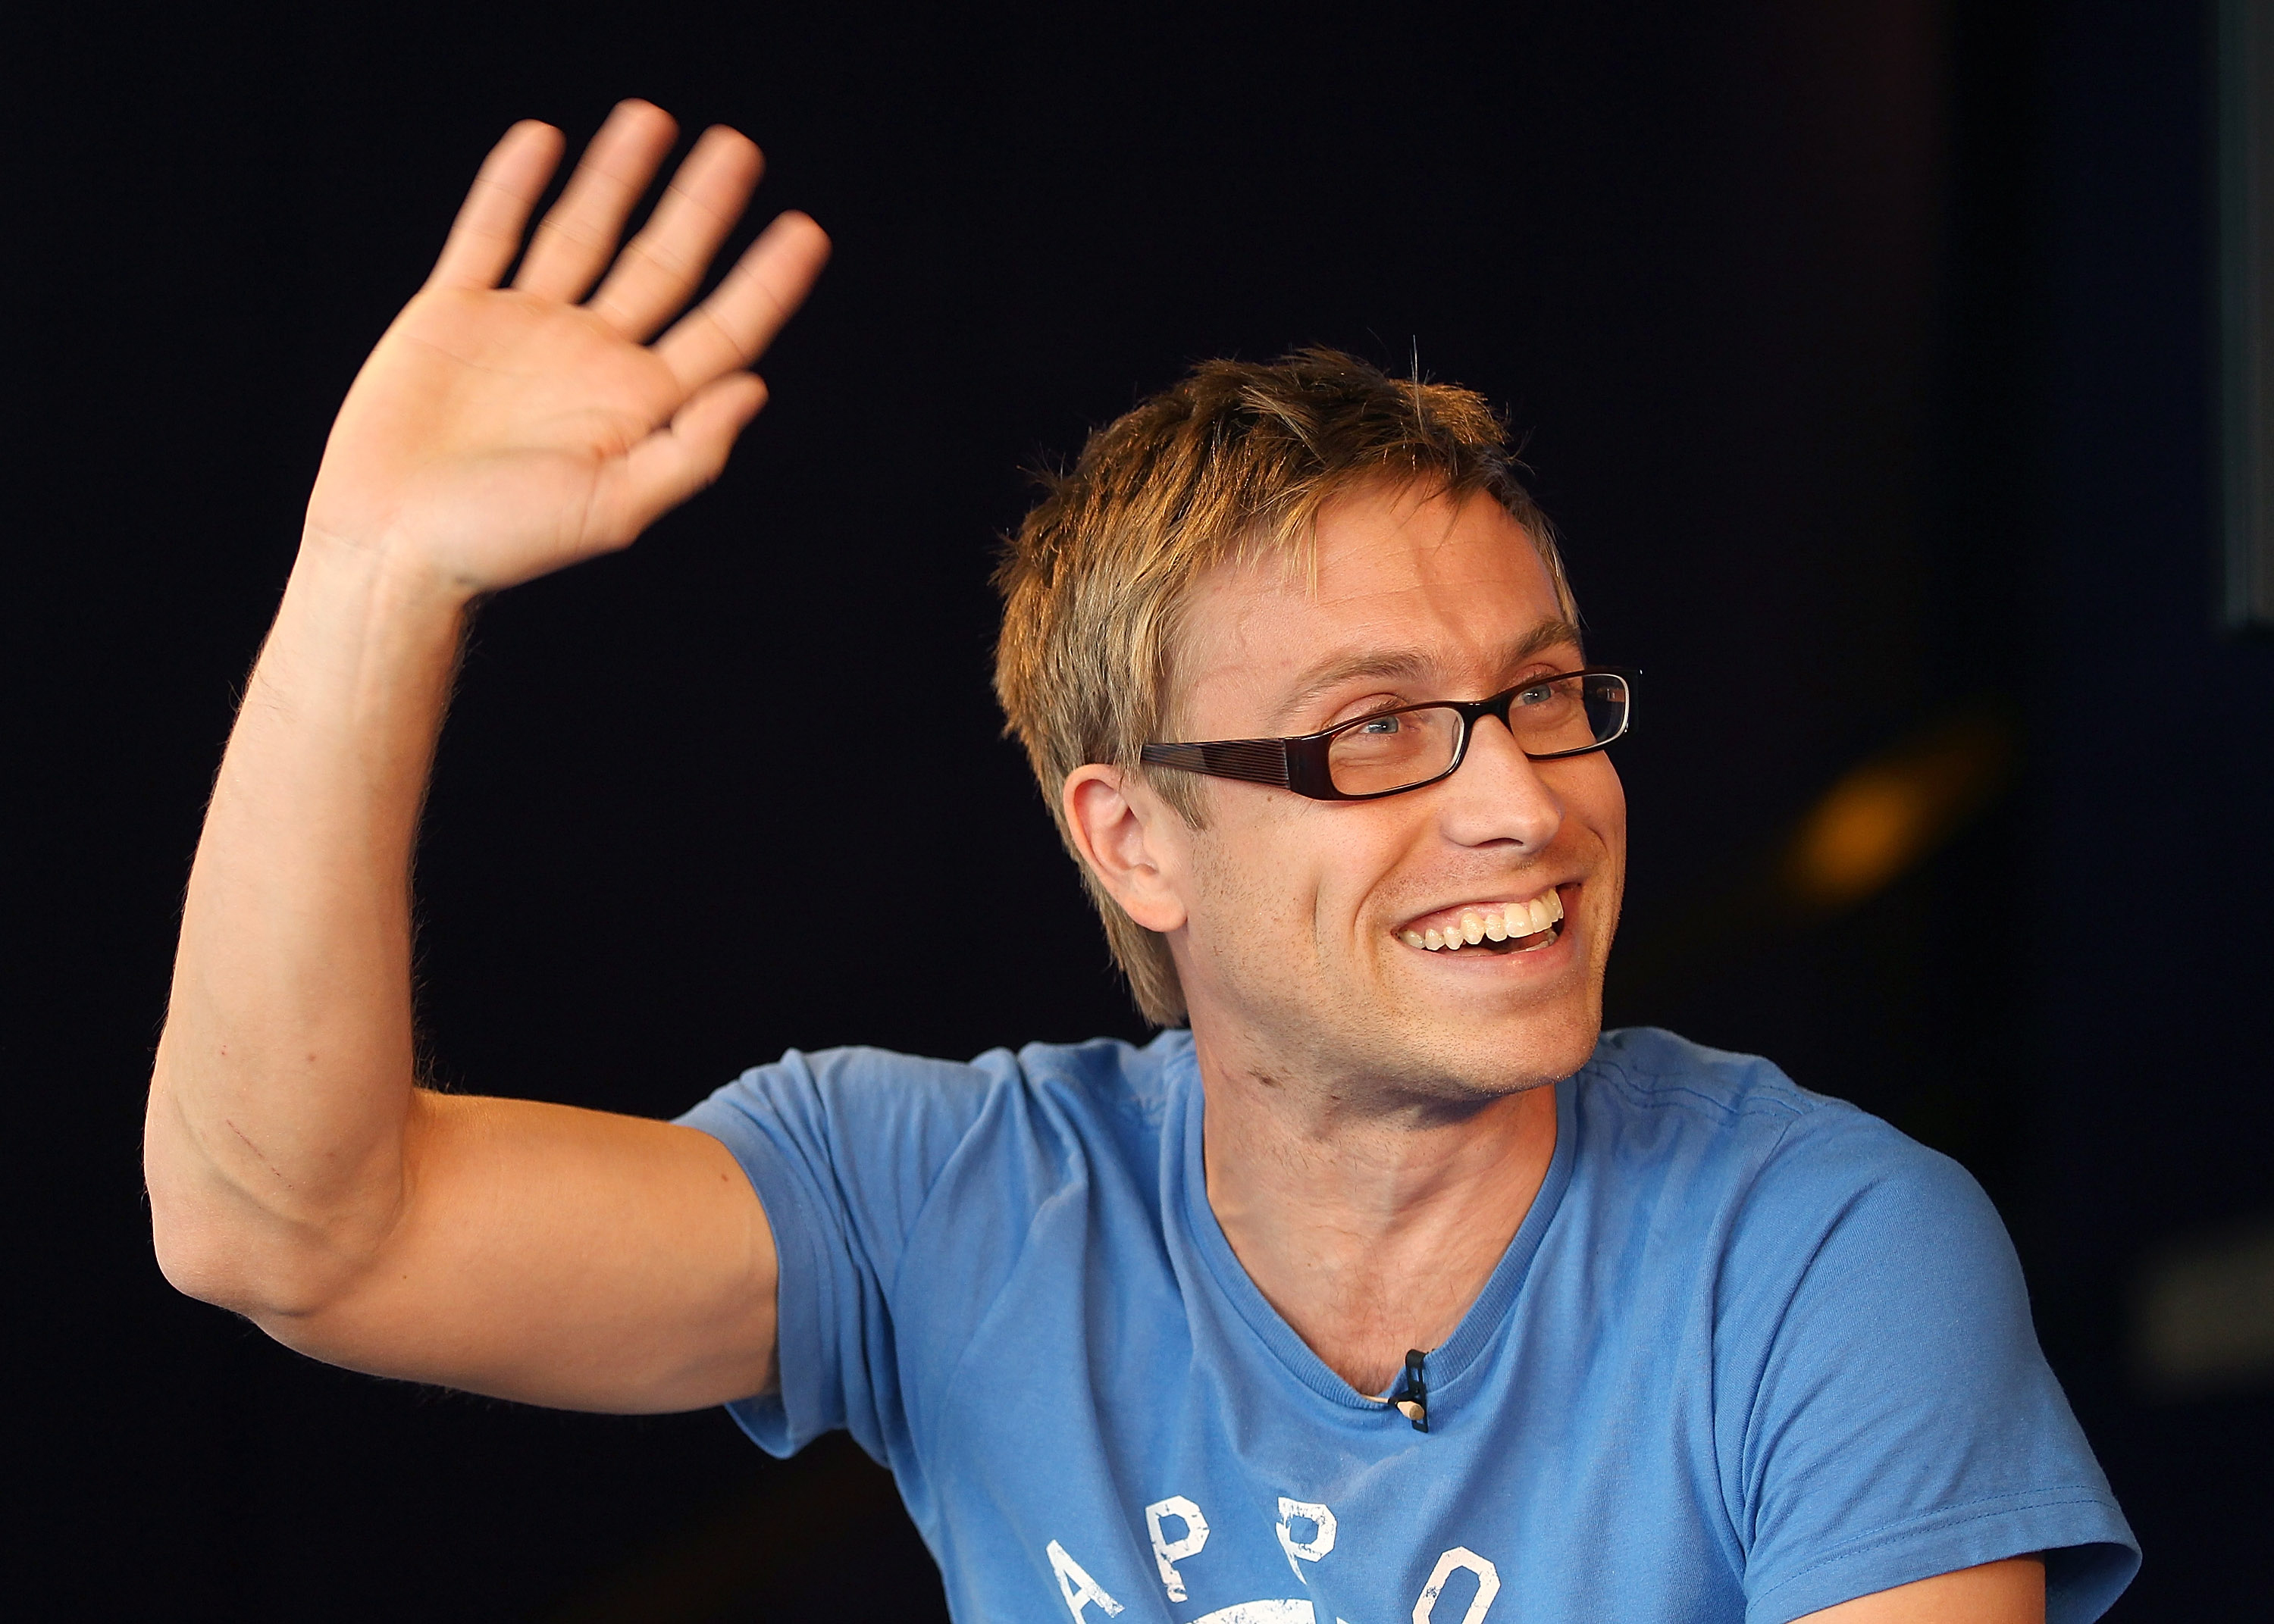 Russell Howard will now perform twice in Aberdeen.